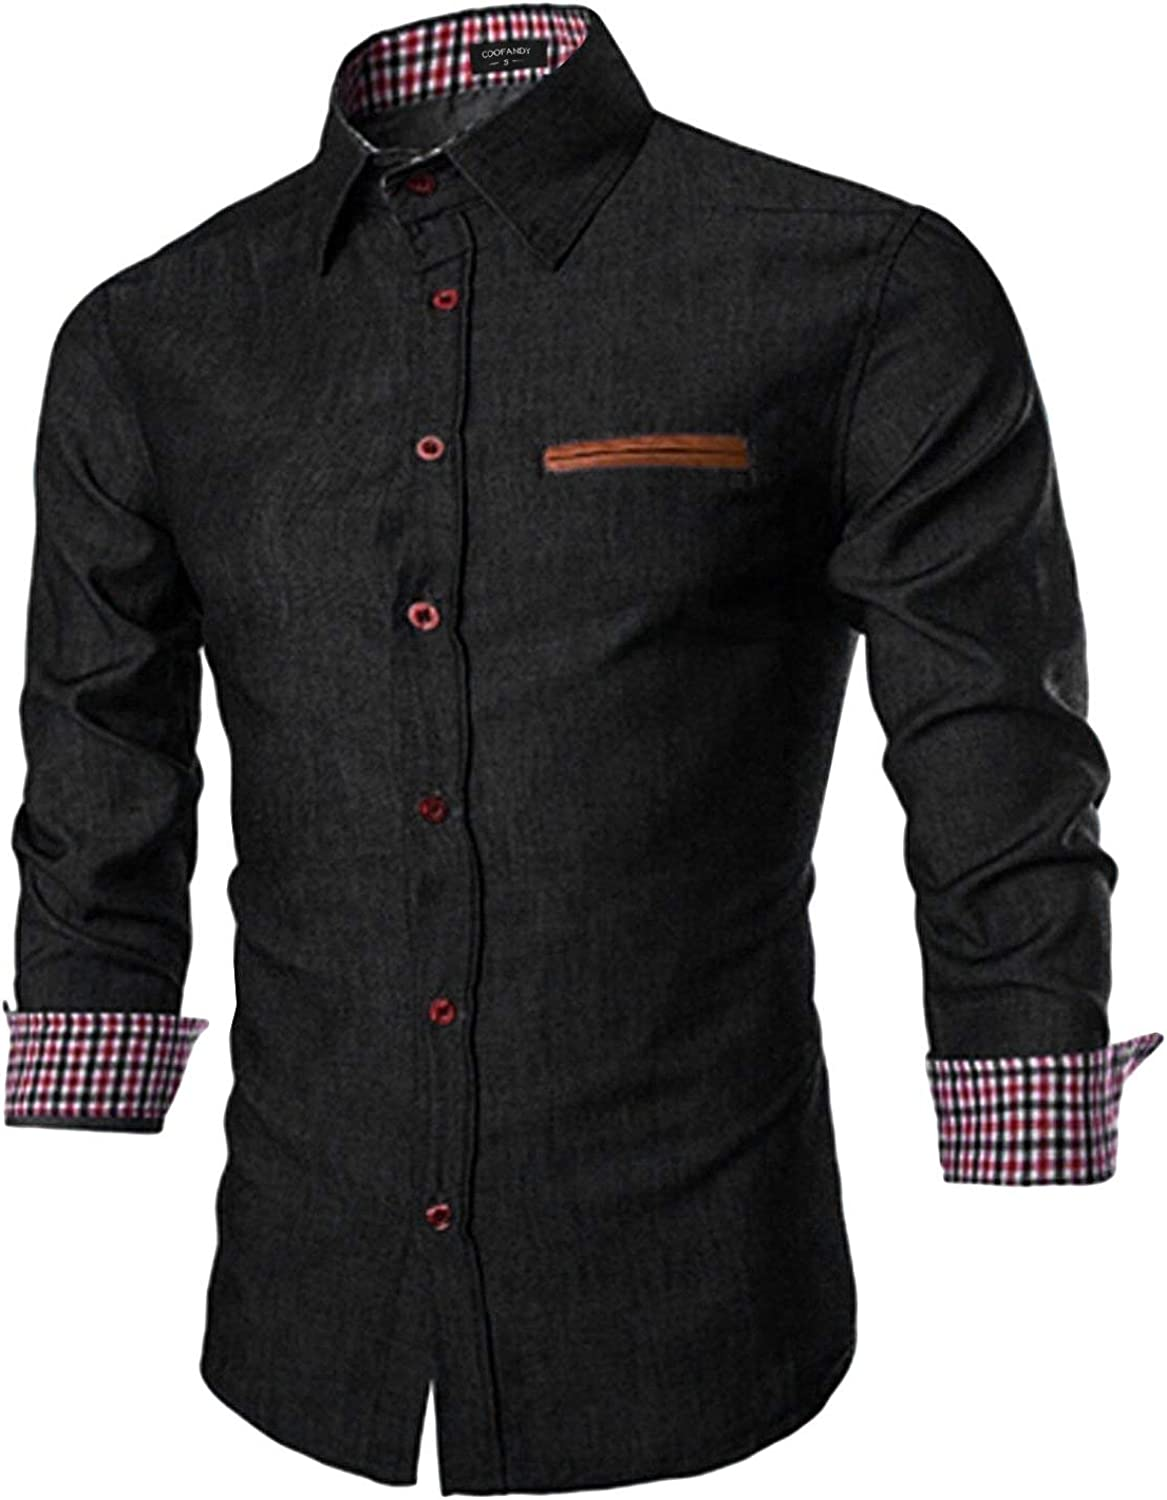 COOFANDY Men's Casual Dress Shirt Button Down Shirts Long-Sleeve Denim Work Shirt: Clothing